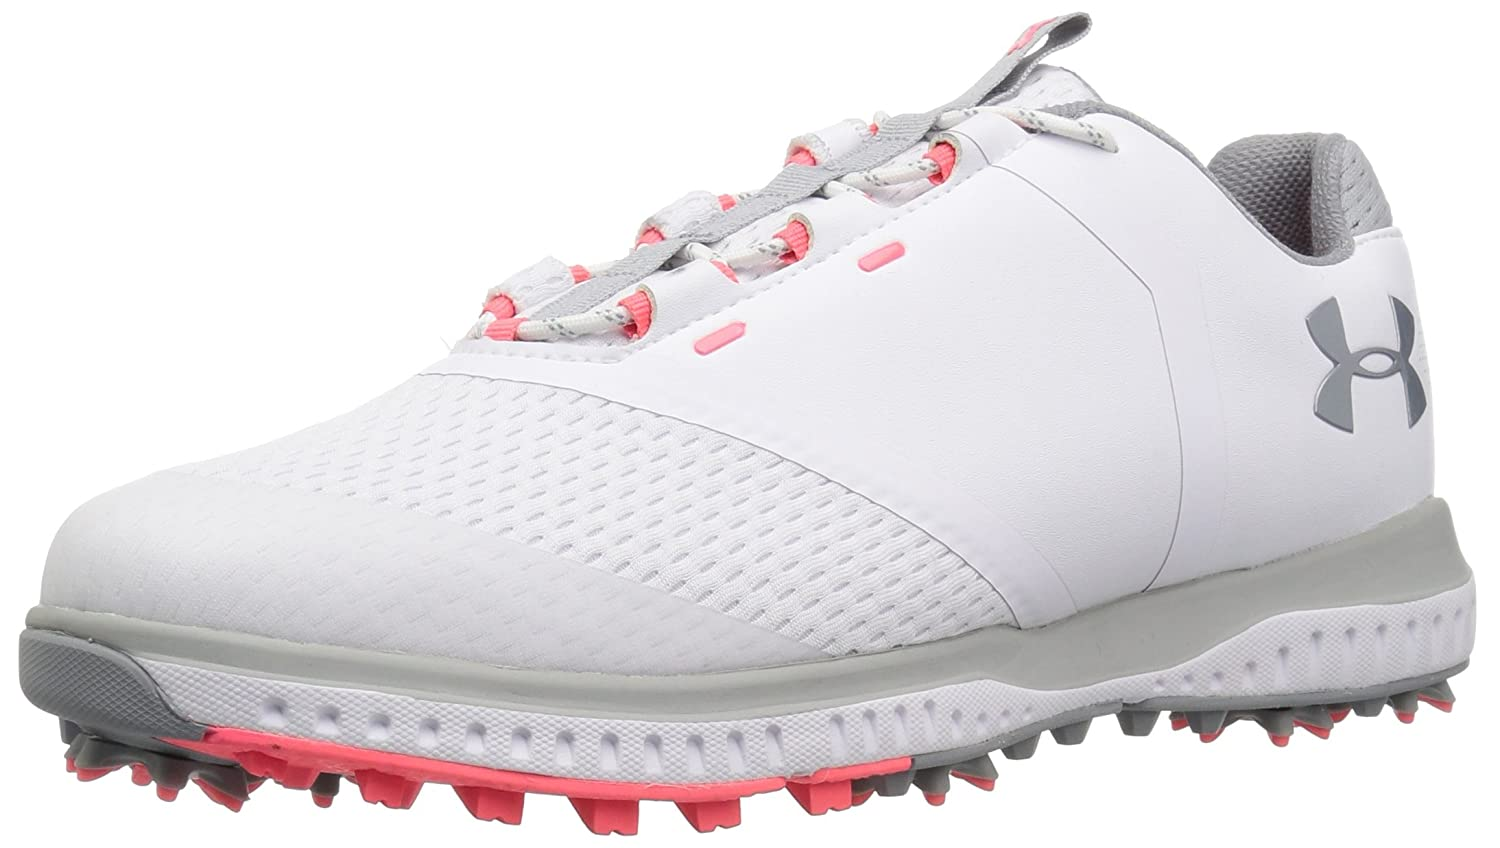 Under Armour Women's Fade RST Golf Shoe B072LNZH4T 9.5 M US|White